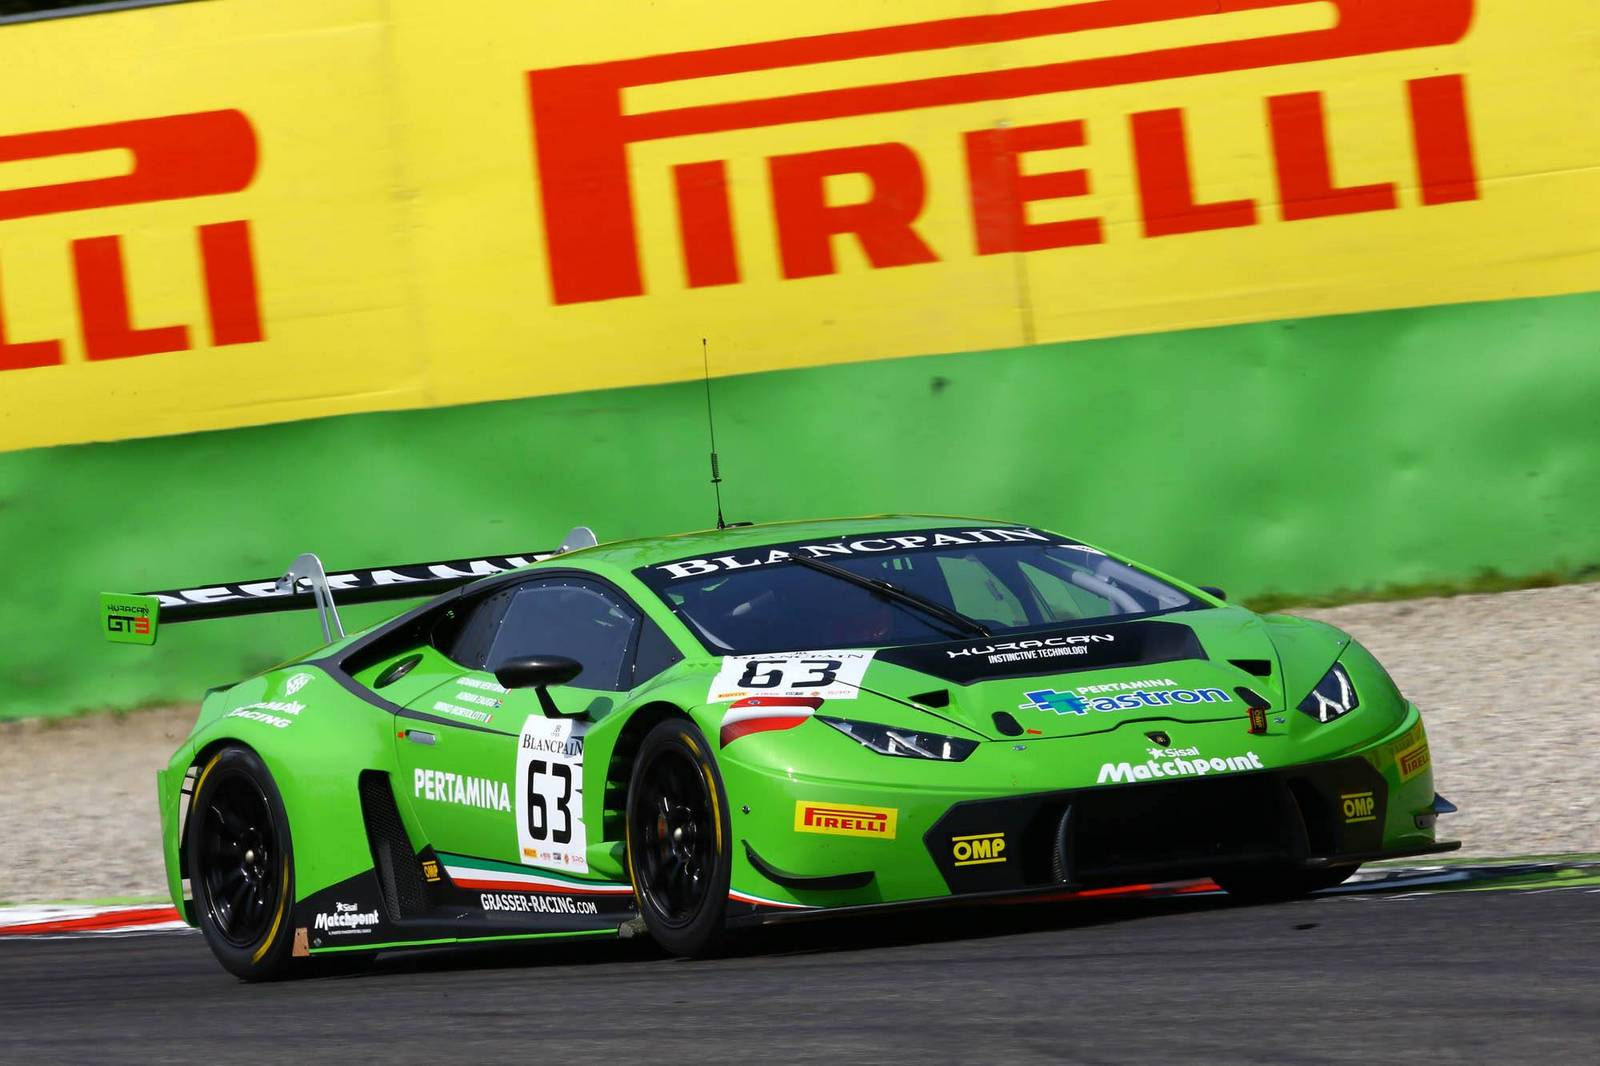 blancpain gt lamborghini huracan gt3 wins race debut at monza gtspirit. Black Bedroom Furniture Sets. Home Design Ideas